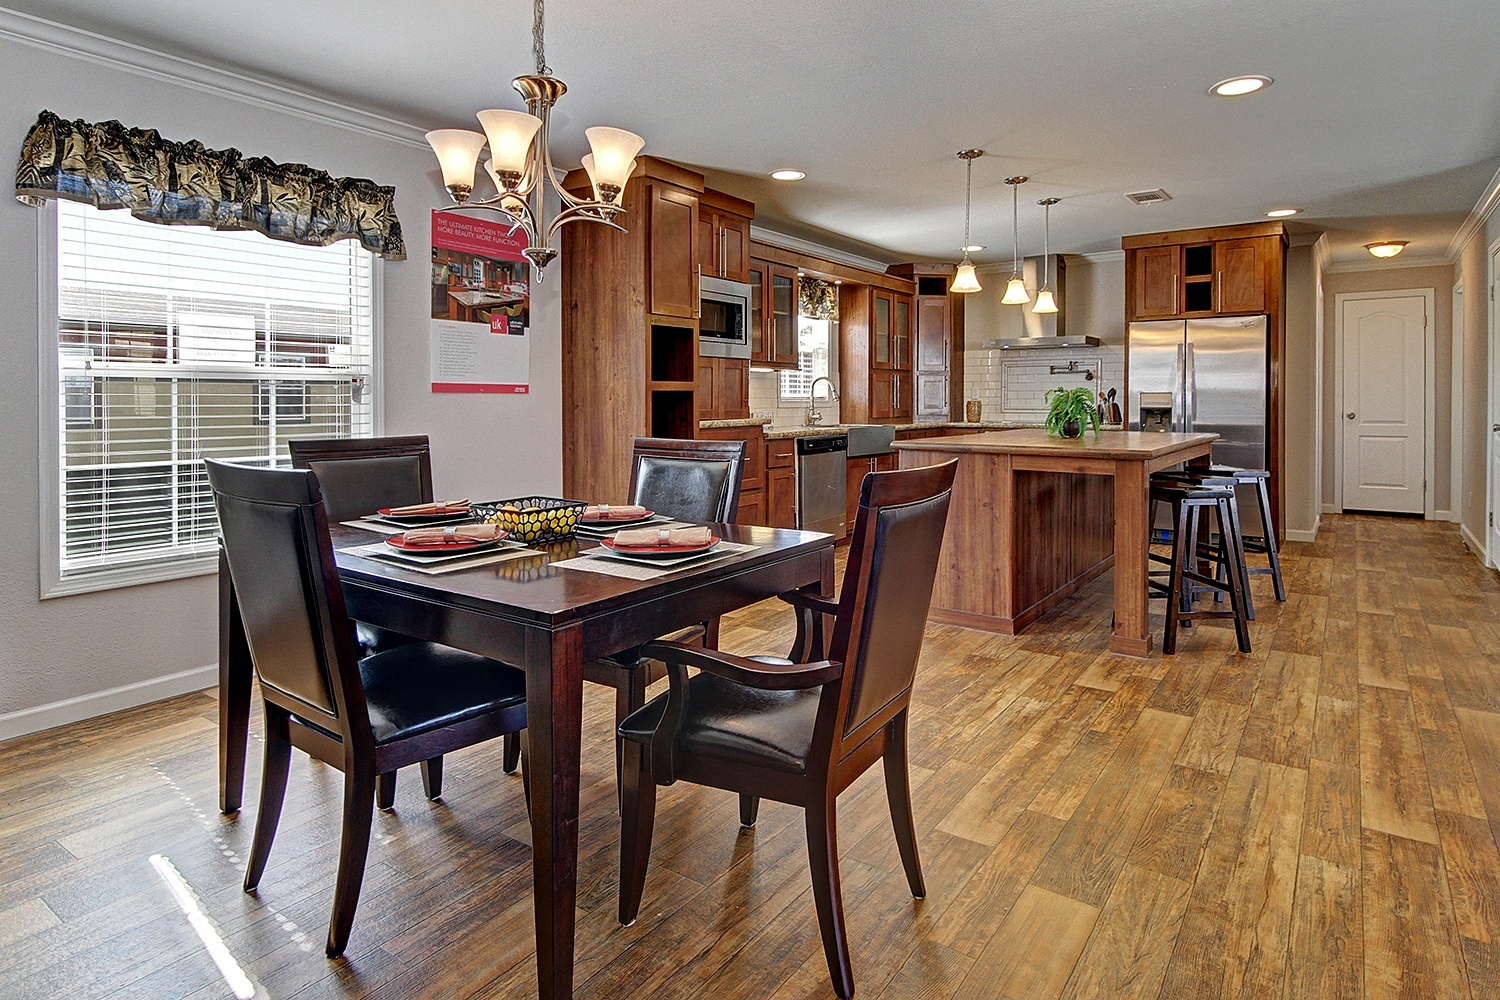 Manufactured Homes: Why More People Are Choosing The Factory Built Route